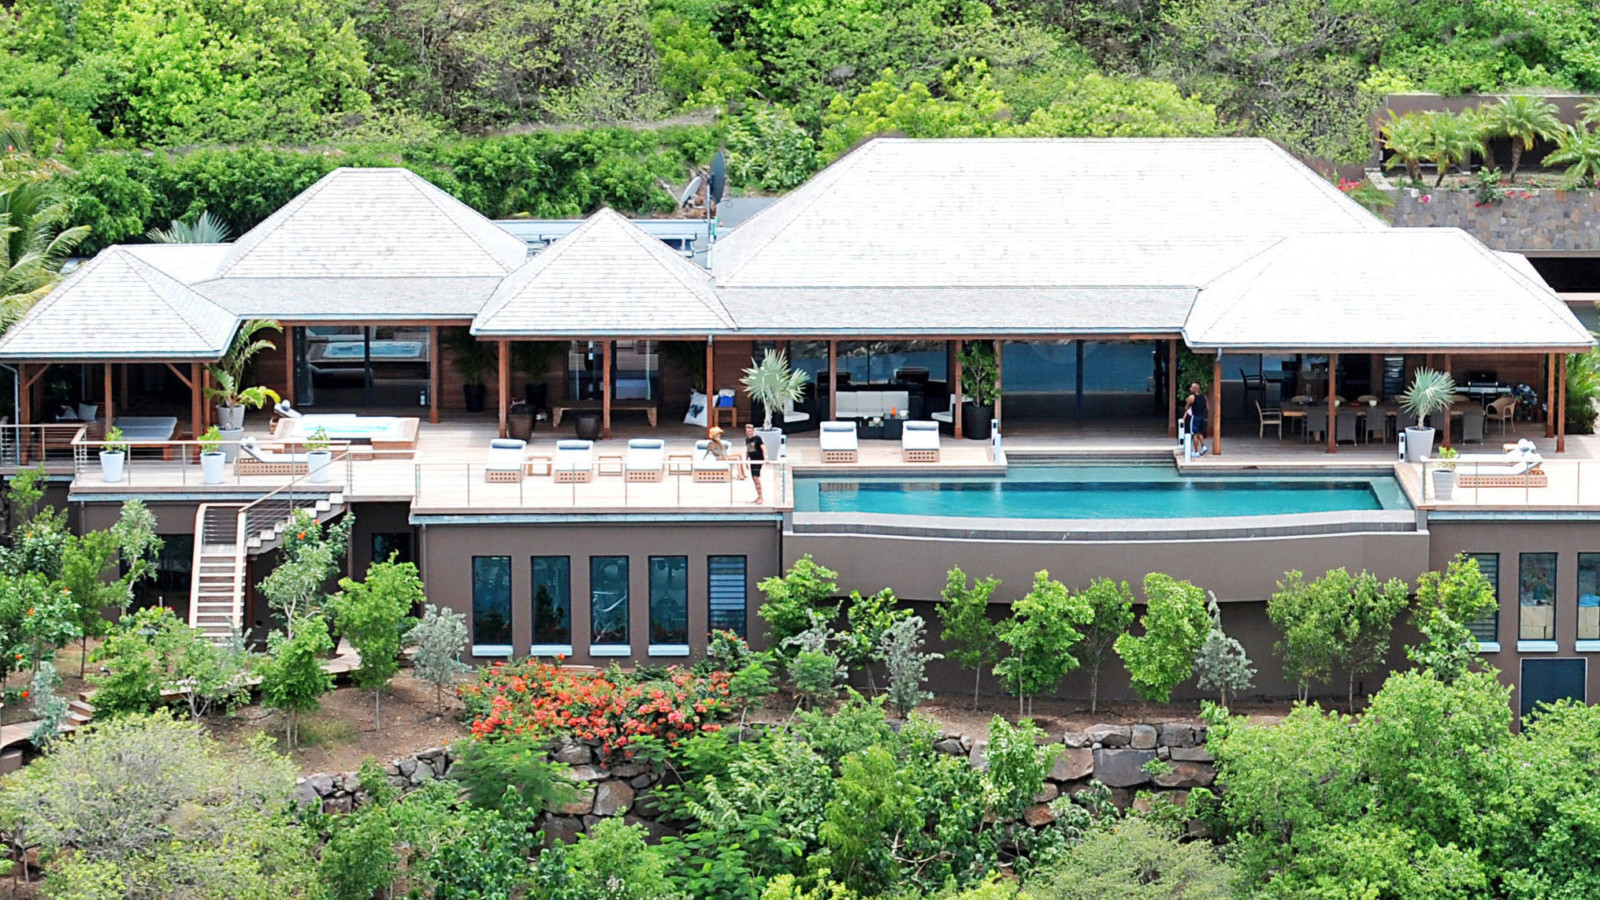 Rent Johnny Hallyday's Luxurious St. Barth Villa For $5,000 A Night 2